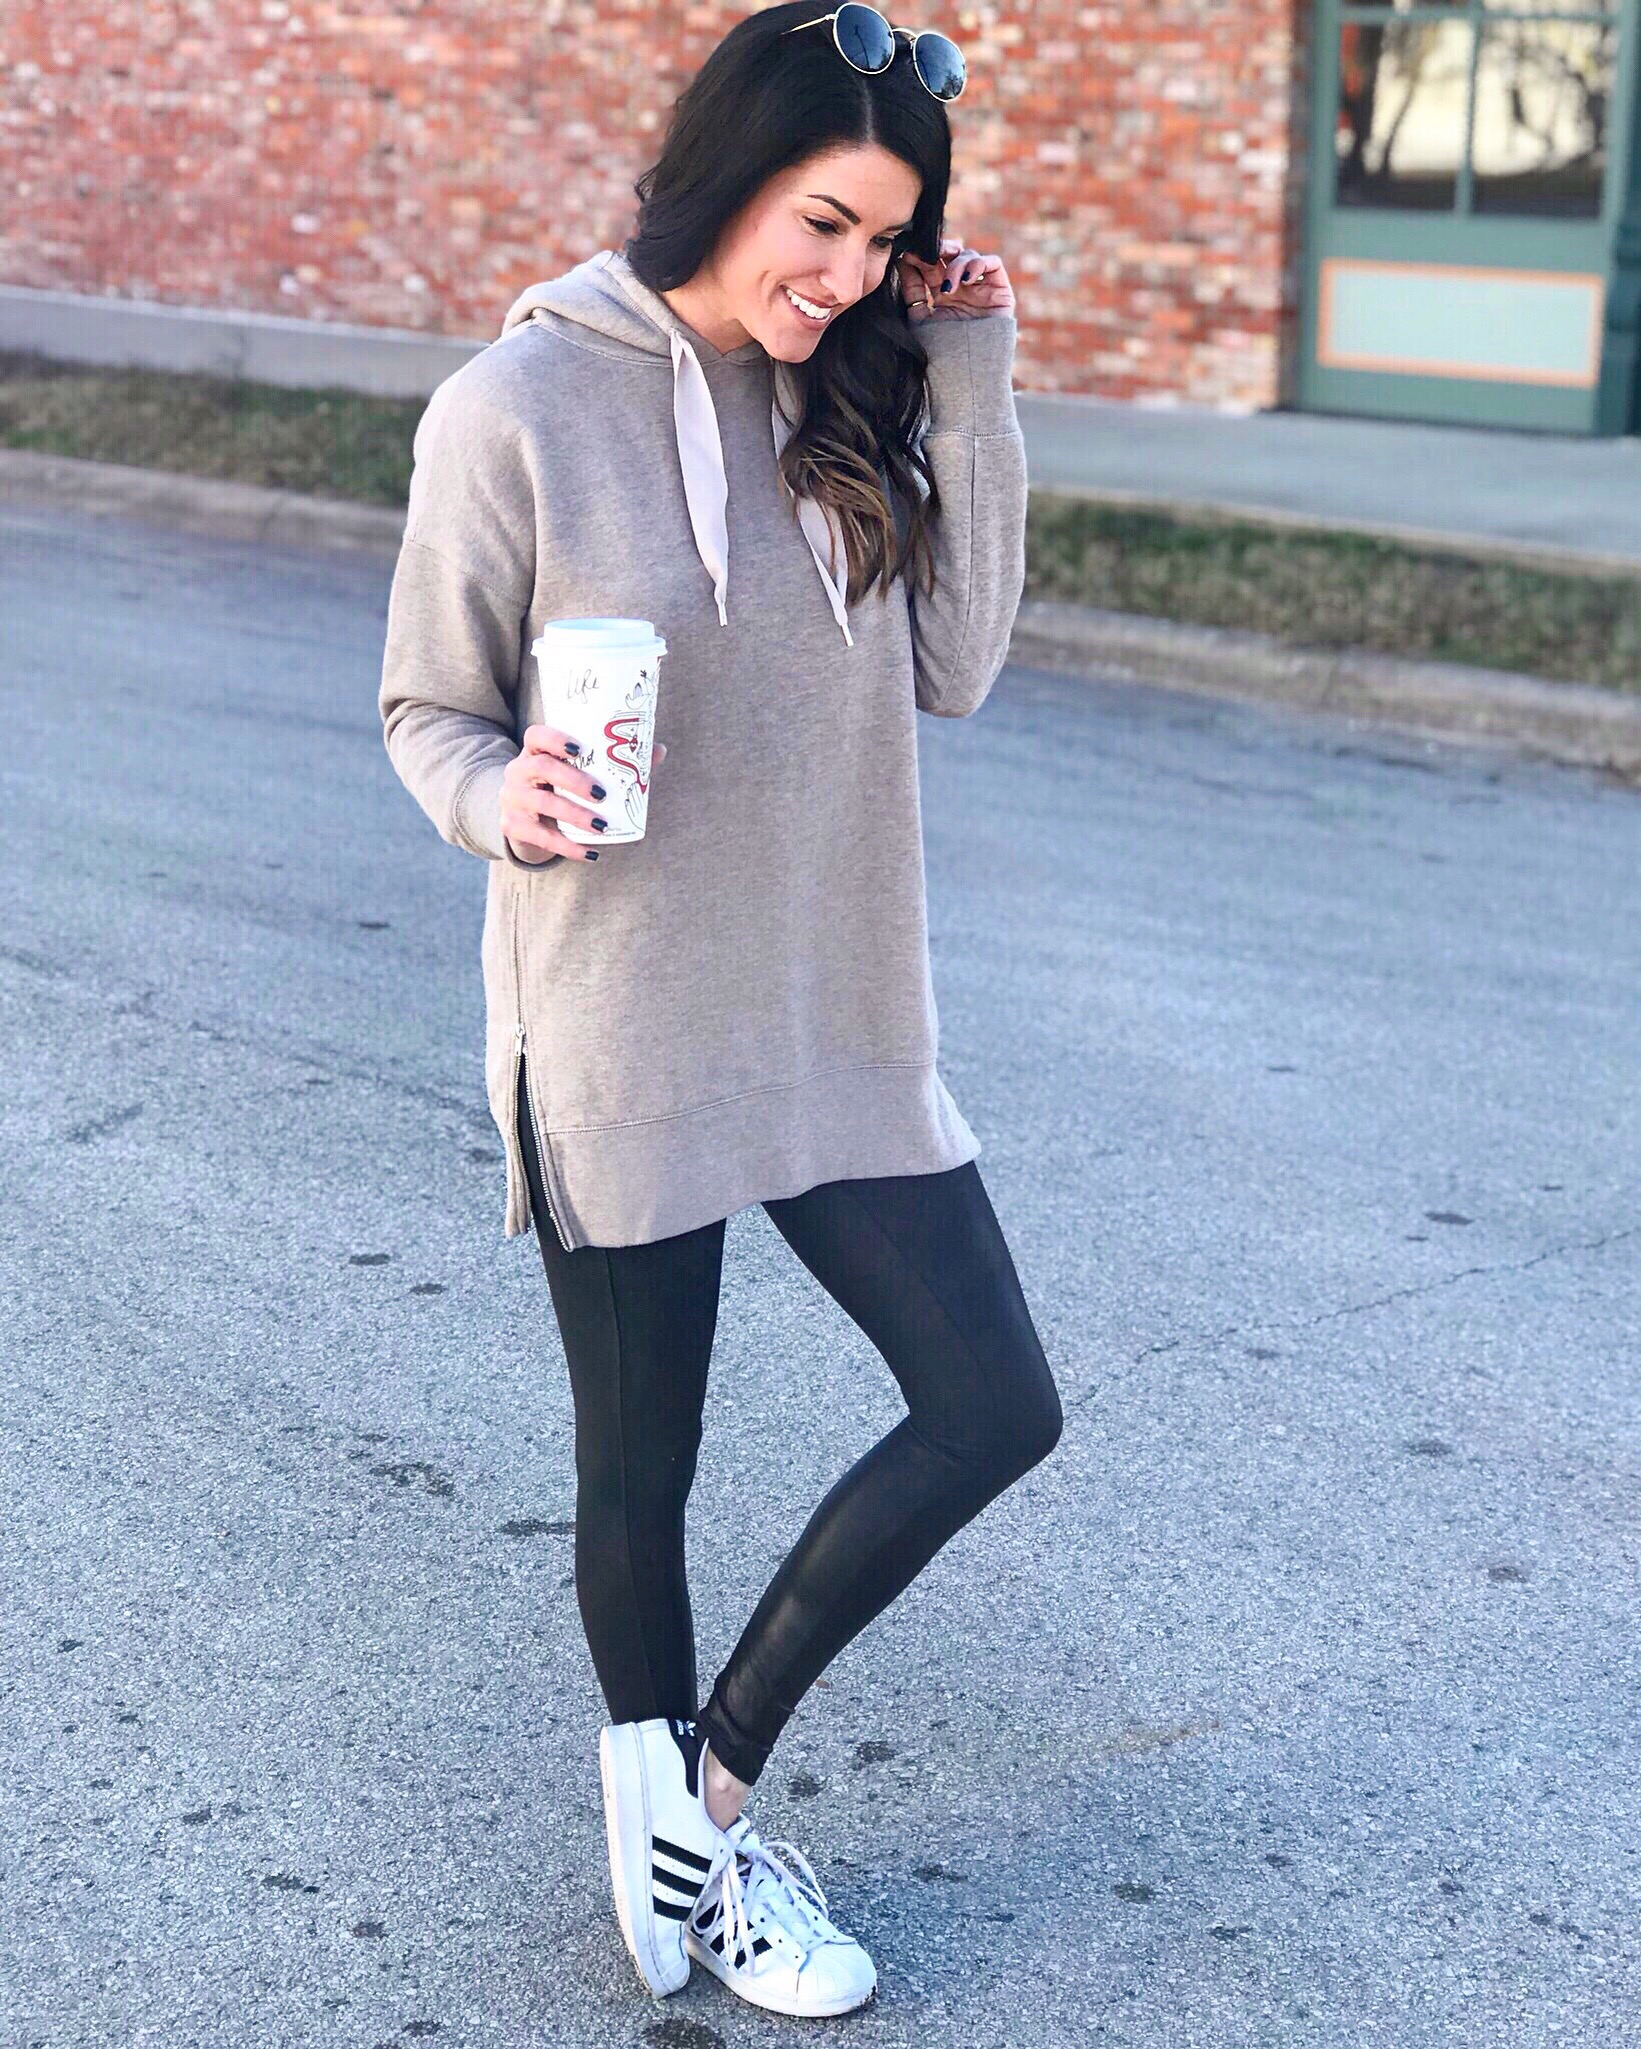 Oversized sweater and black leggings